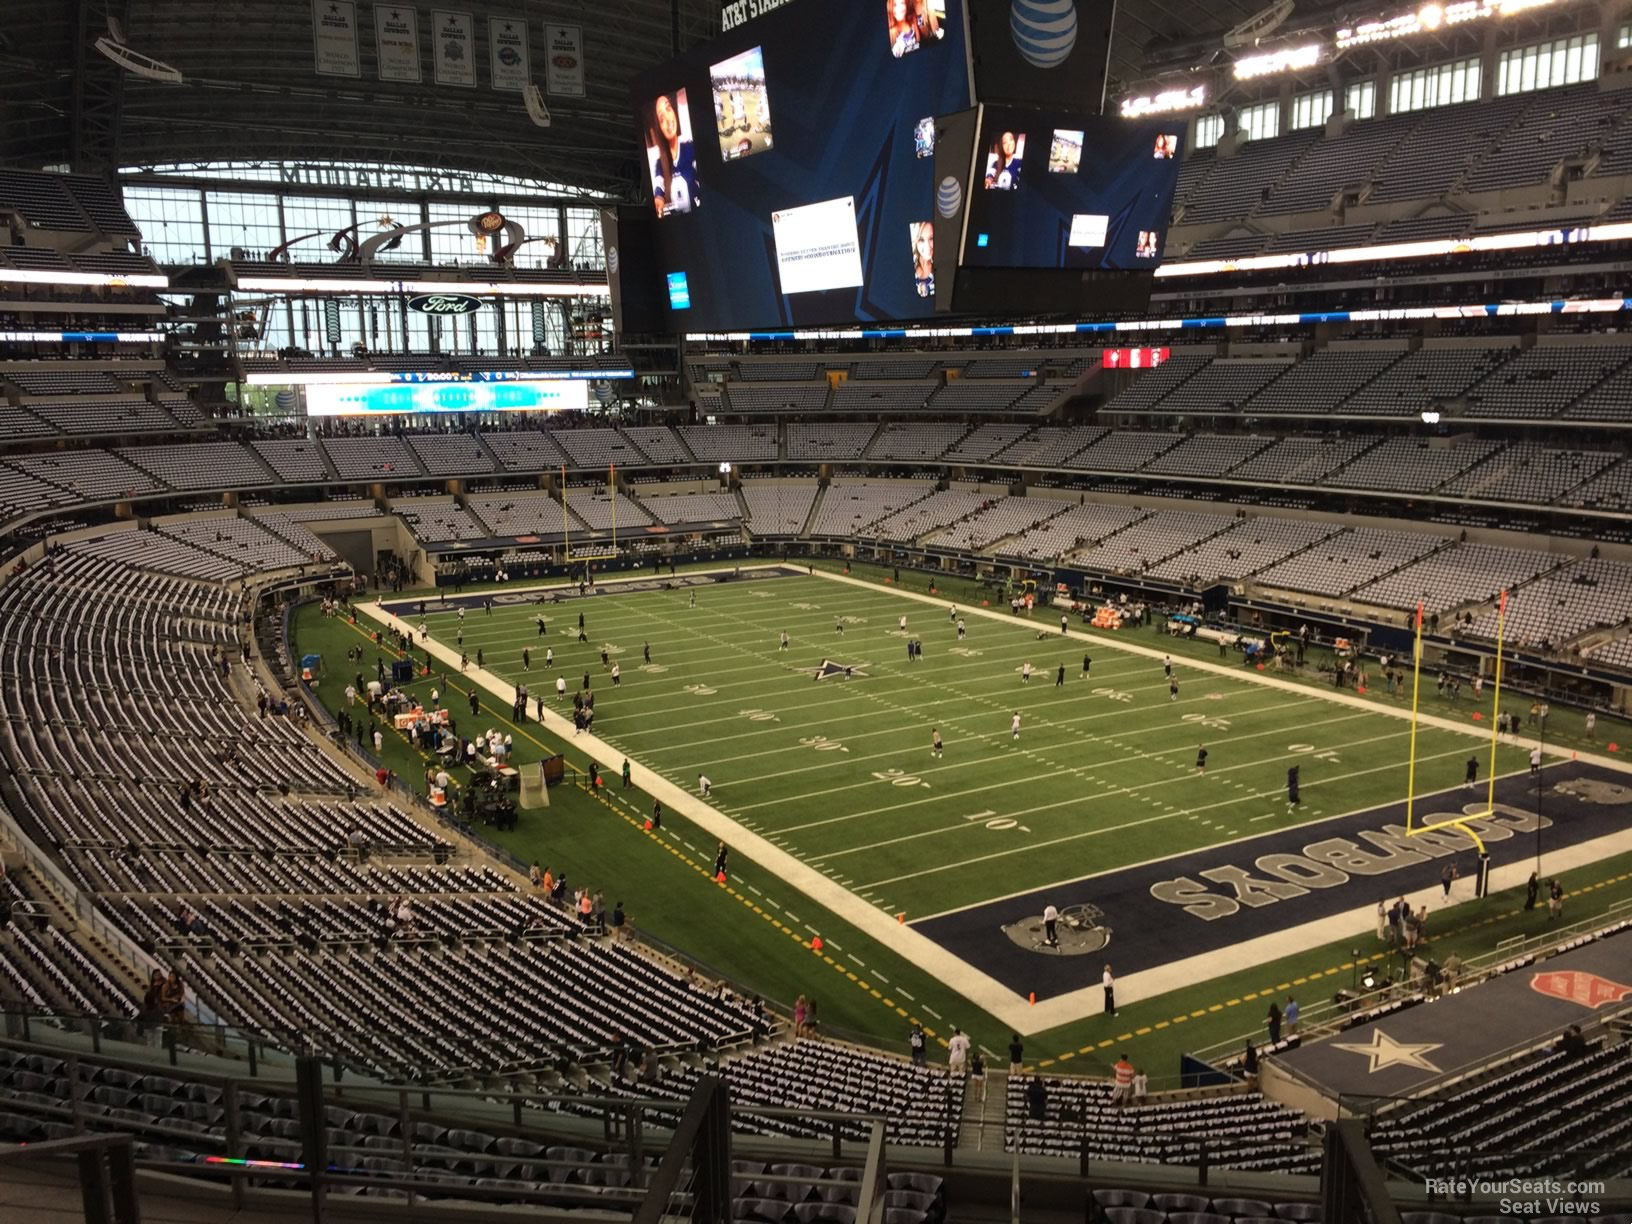 Third Row Seating >> AT&T Stadium Section 328 - Dallas Cowboys - RateYourSeats.com